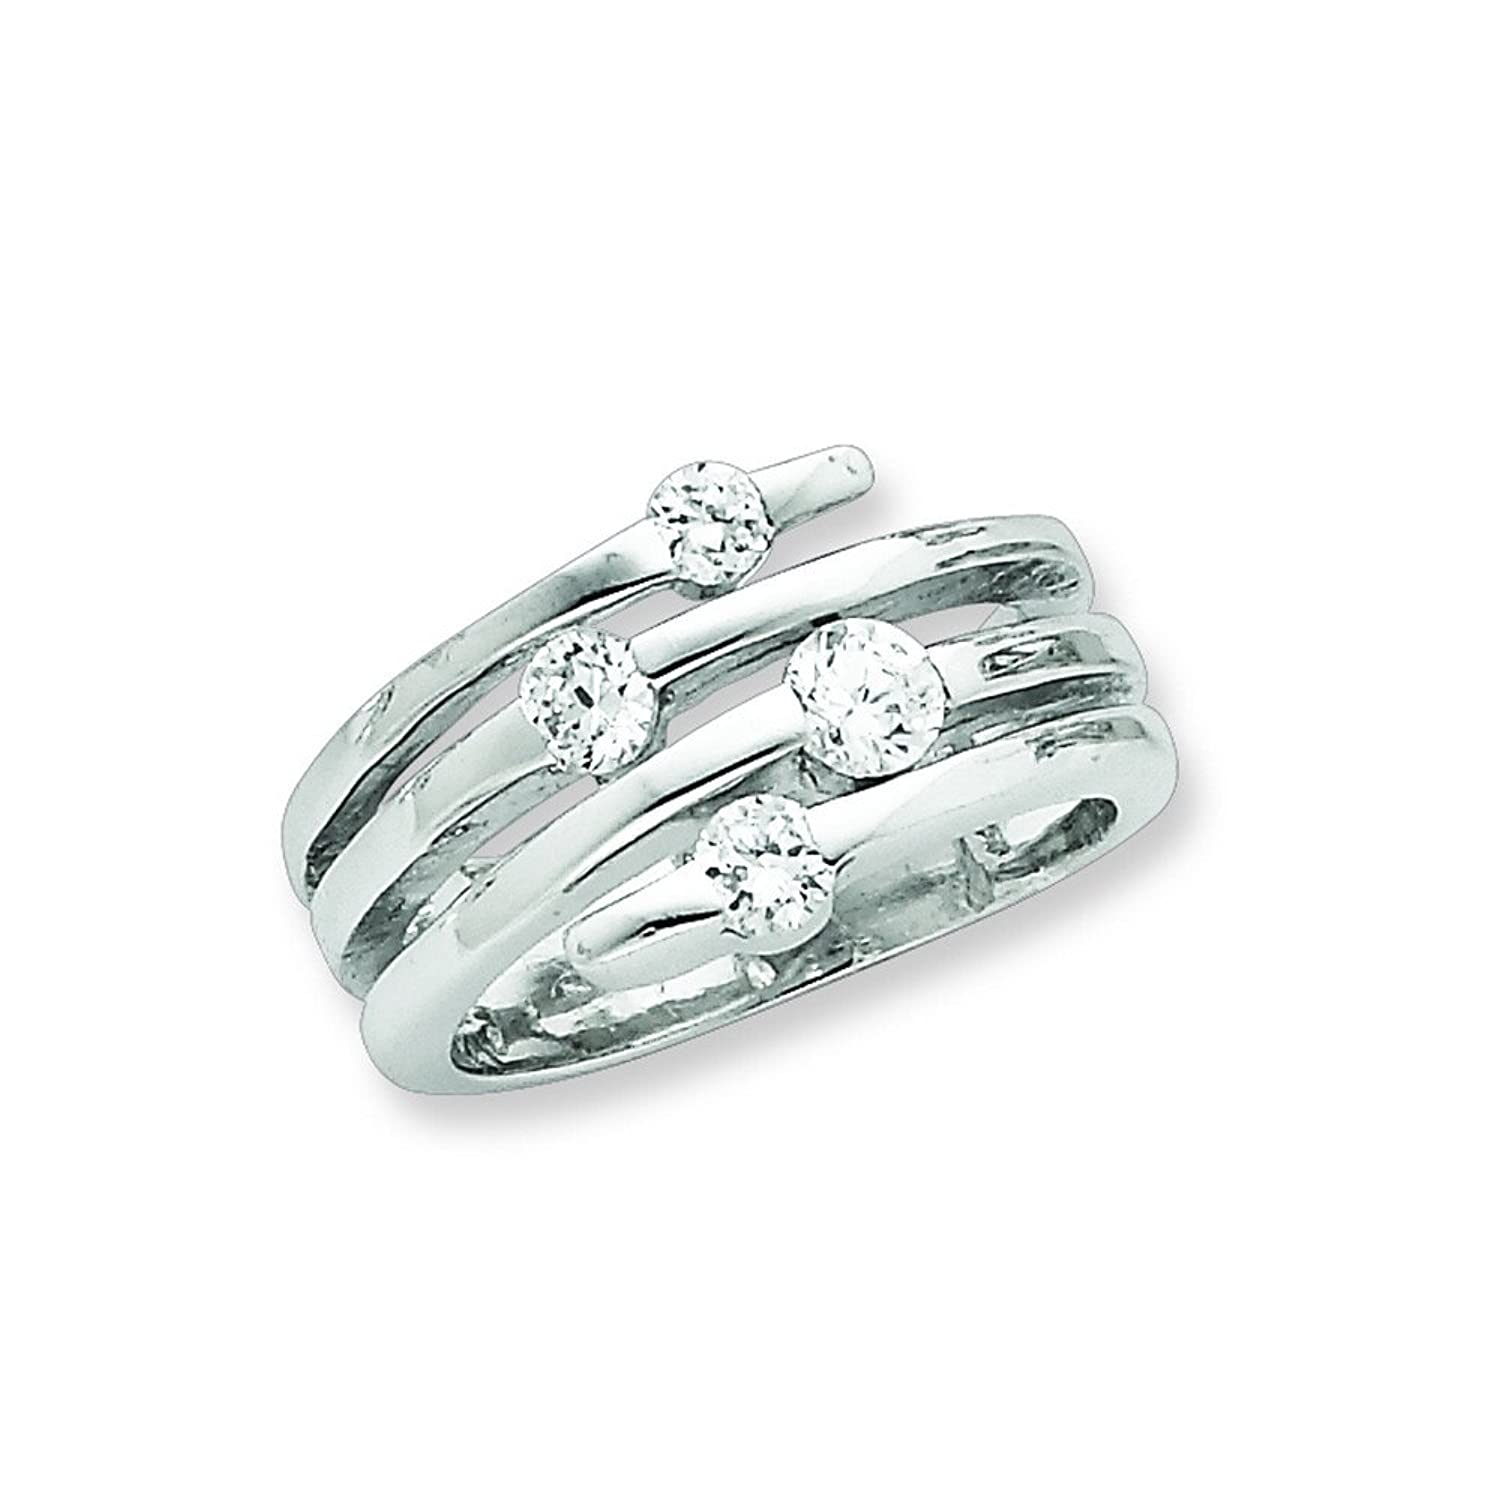 plated right jewellery pin setting pave cz puma ring rings sterling rhodium silver hand design